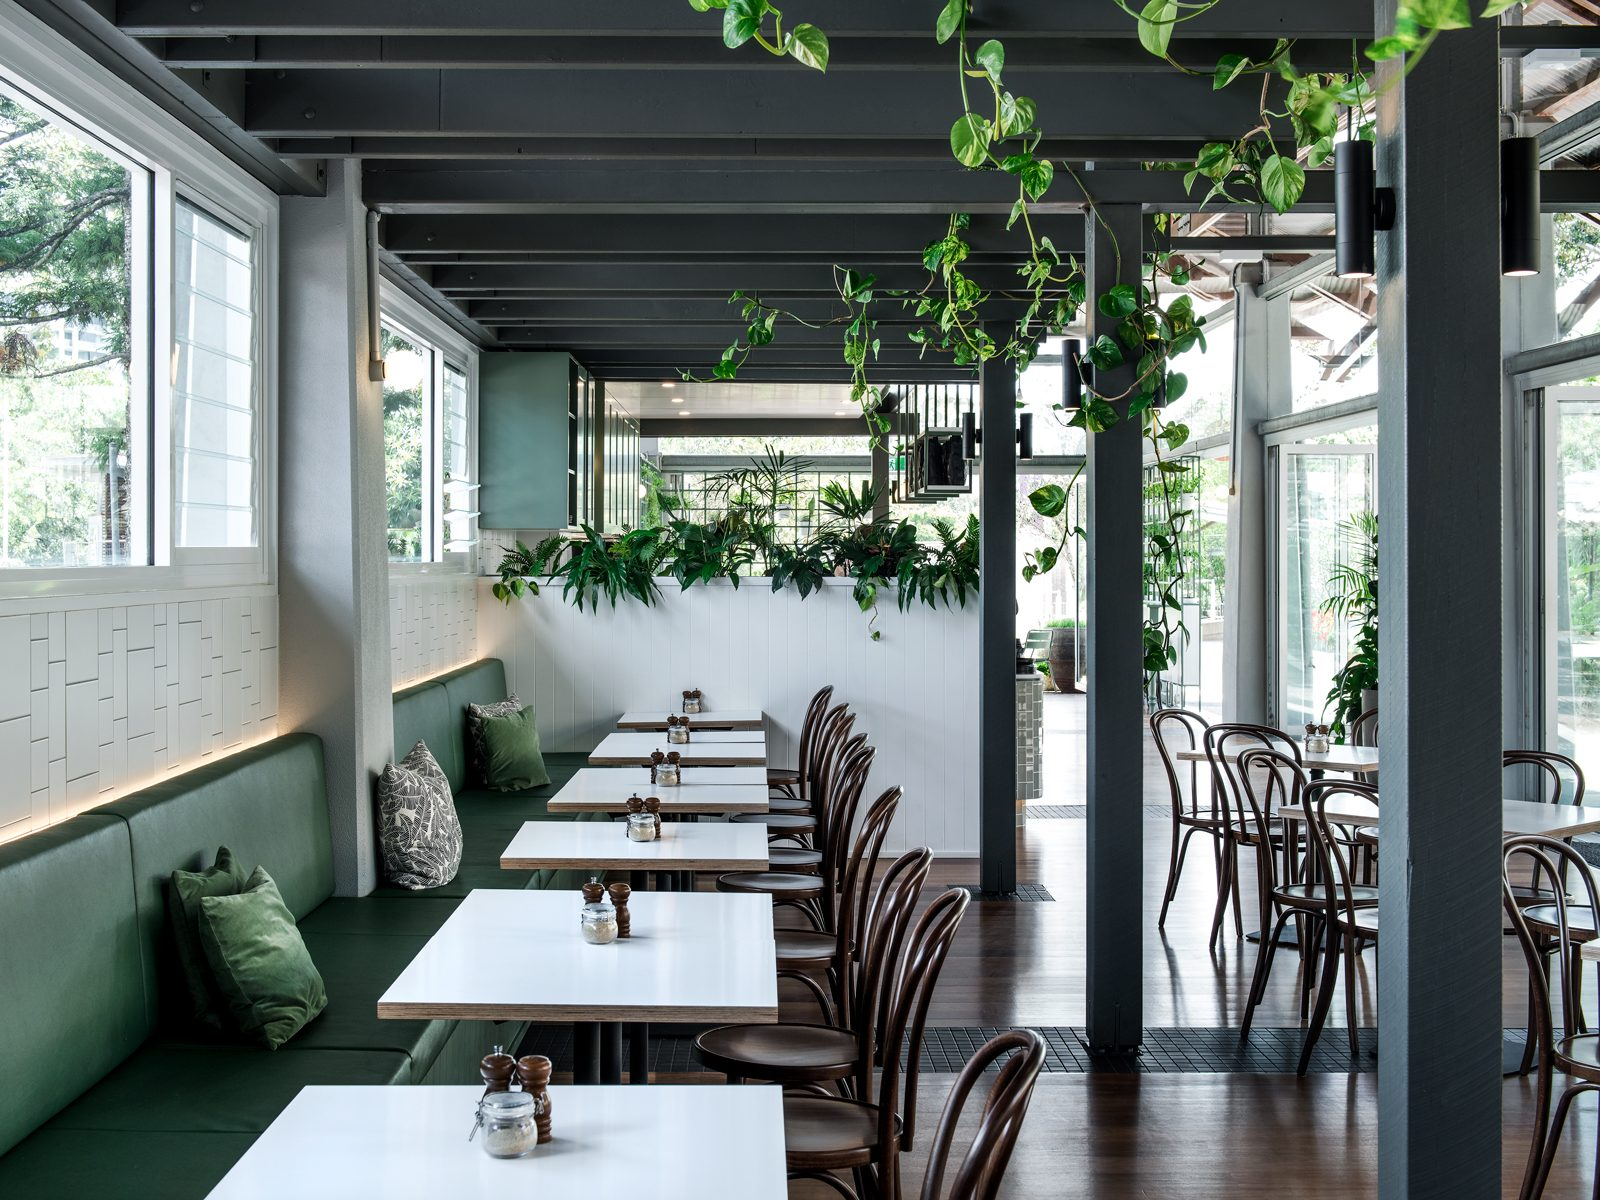 The_Garden_Room_Maytree_Studios_Brisbane_Architects_17